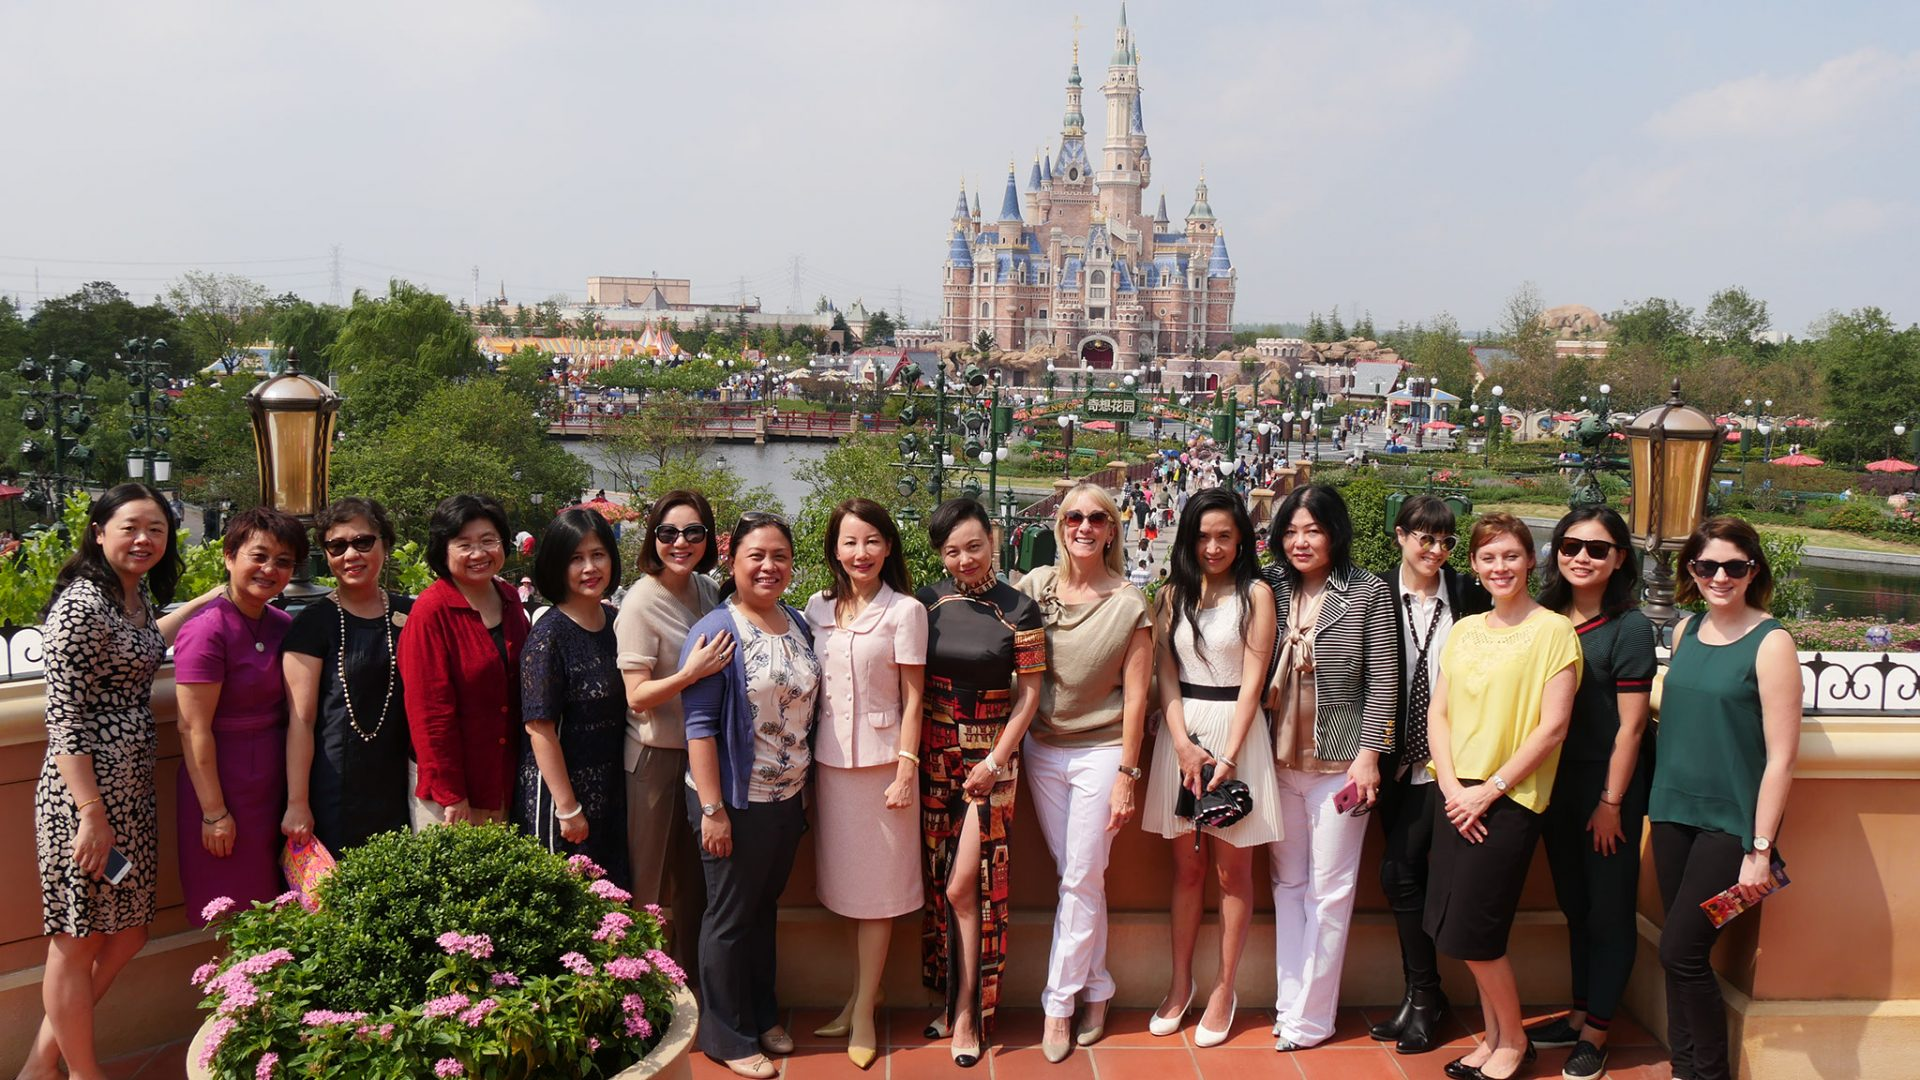 From left to right: Linda Liang, CSOFT, Yan Wang, Shanghai Disney Resort, Jean Zou, Shanghai Disney Resort, Catty Ren, Google Adwords, Vicky Gong, Shanghai Disney Resort, Shunee Yee, CSOFT, Lara Tiam, Shanghai Disney Resort, Jane Sun, Ctrip, Marisa Drew, Credit Suisse Junling Cui, Amcham Shanghai, Yi-Li van den Berg, Corning, Katherine Lewis, Debrett's, Marisa Bowers, CSOFT, Jin Gao, GAP